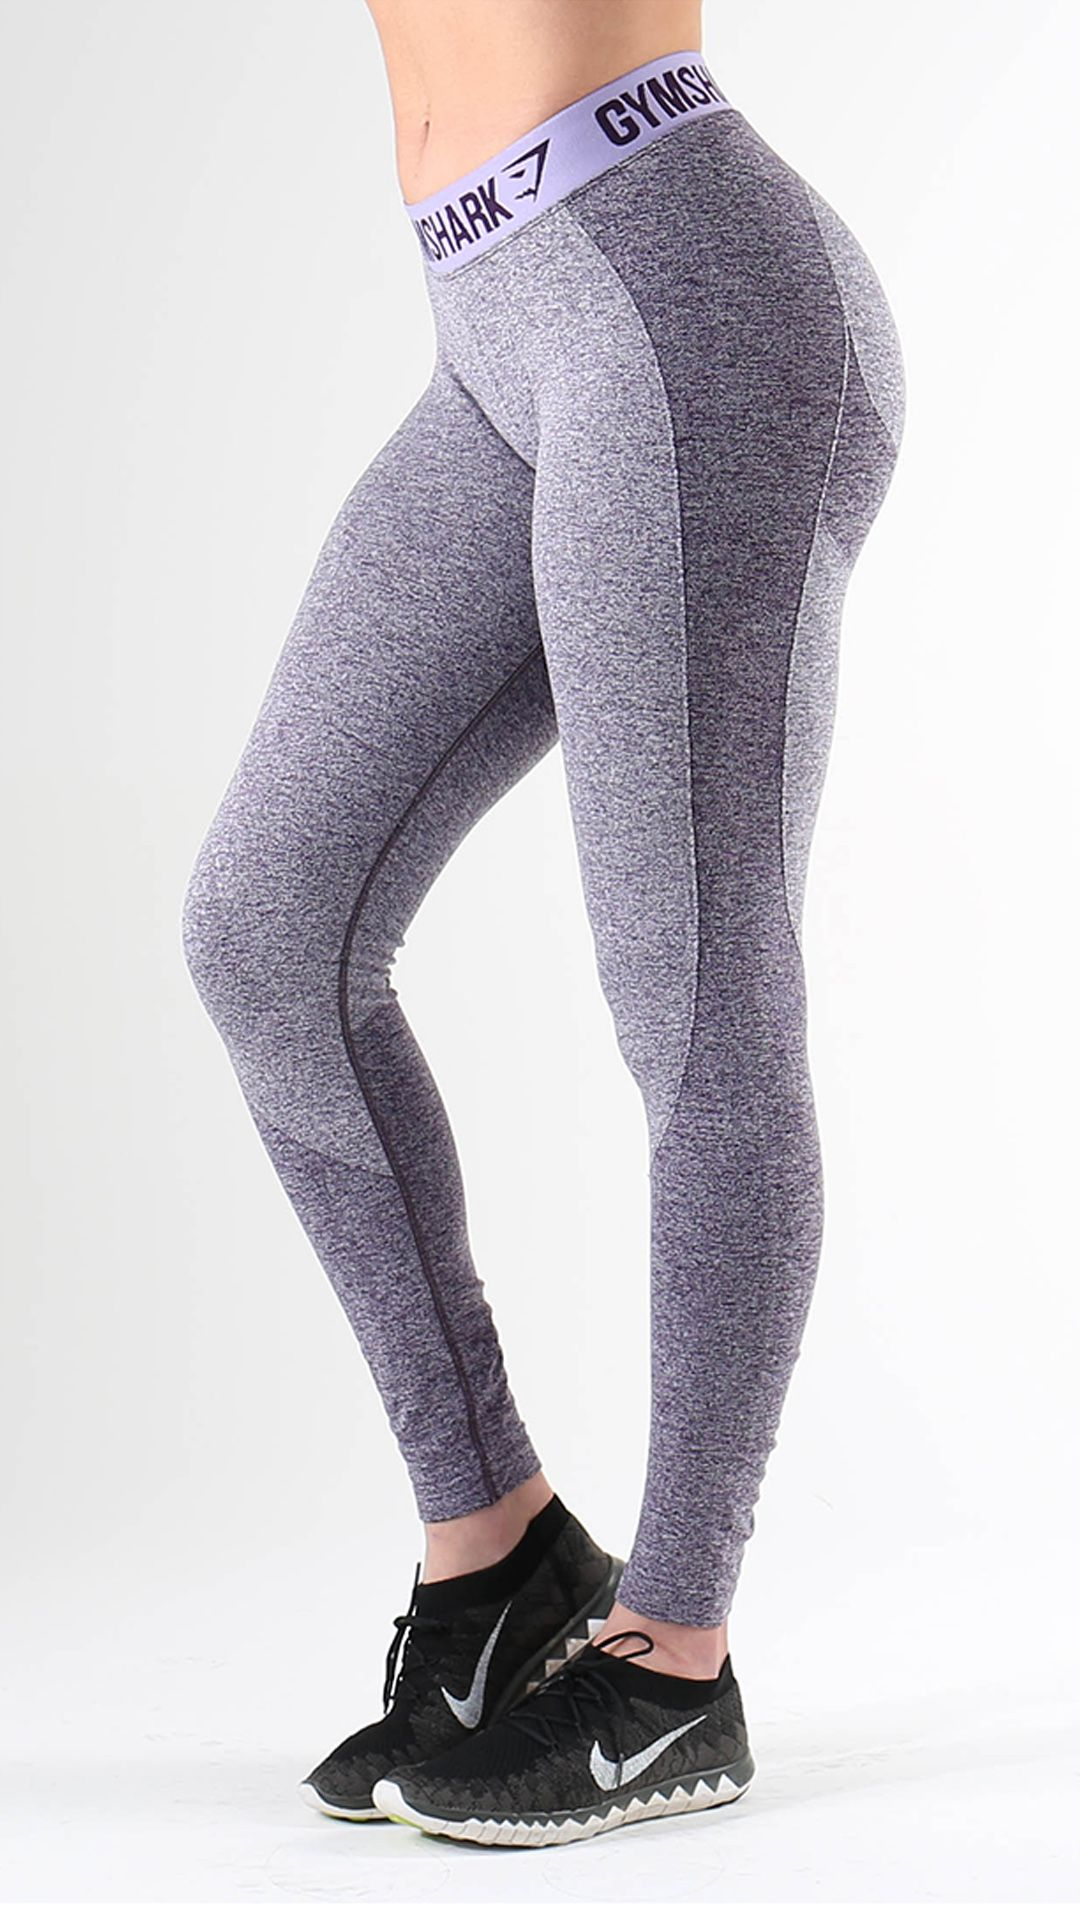 126546f1d7 Form hugging and figure flattering, the Gymshark Flex Leggings combine a  seamless knit with beautiful design so you can squat in confidence.